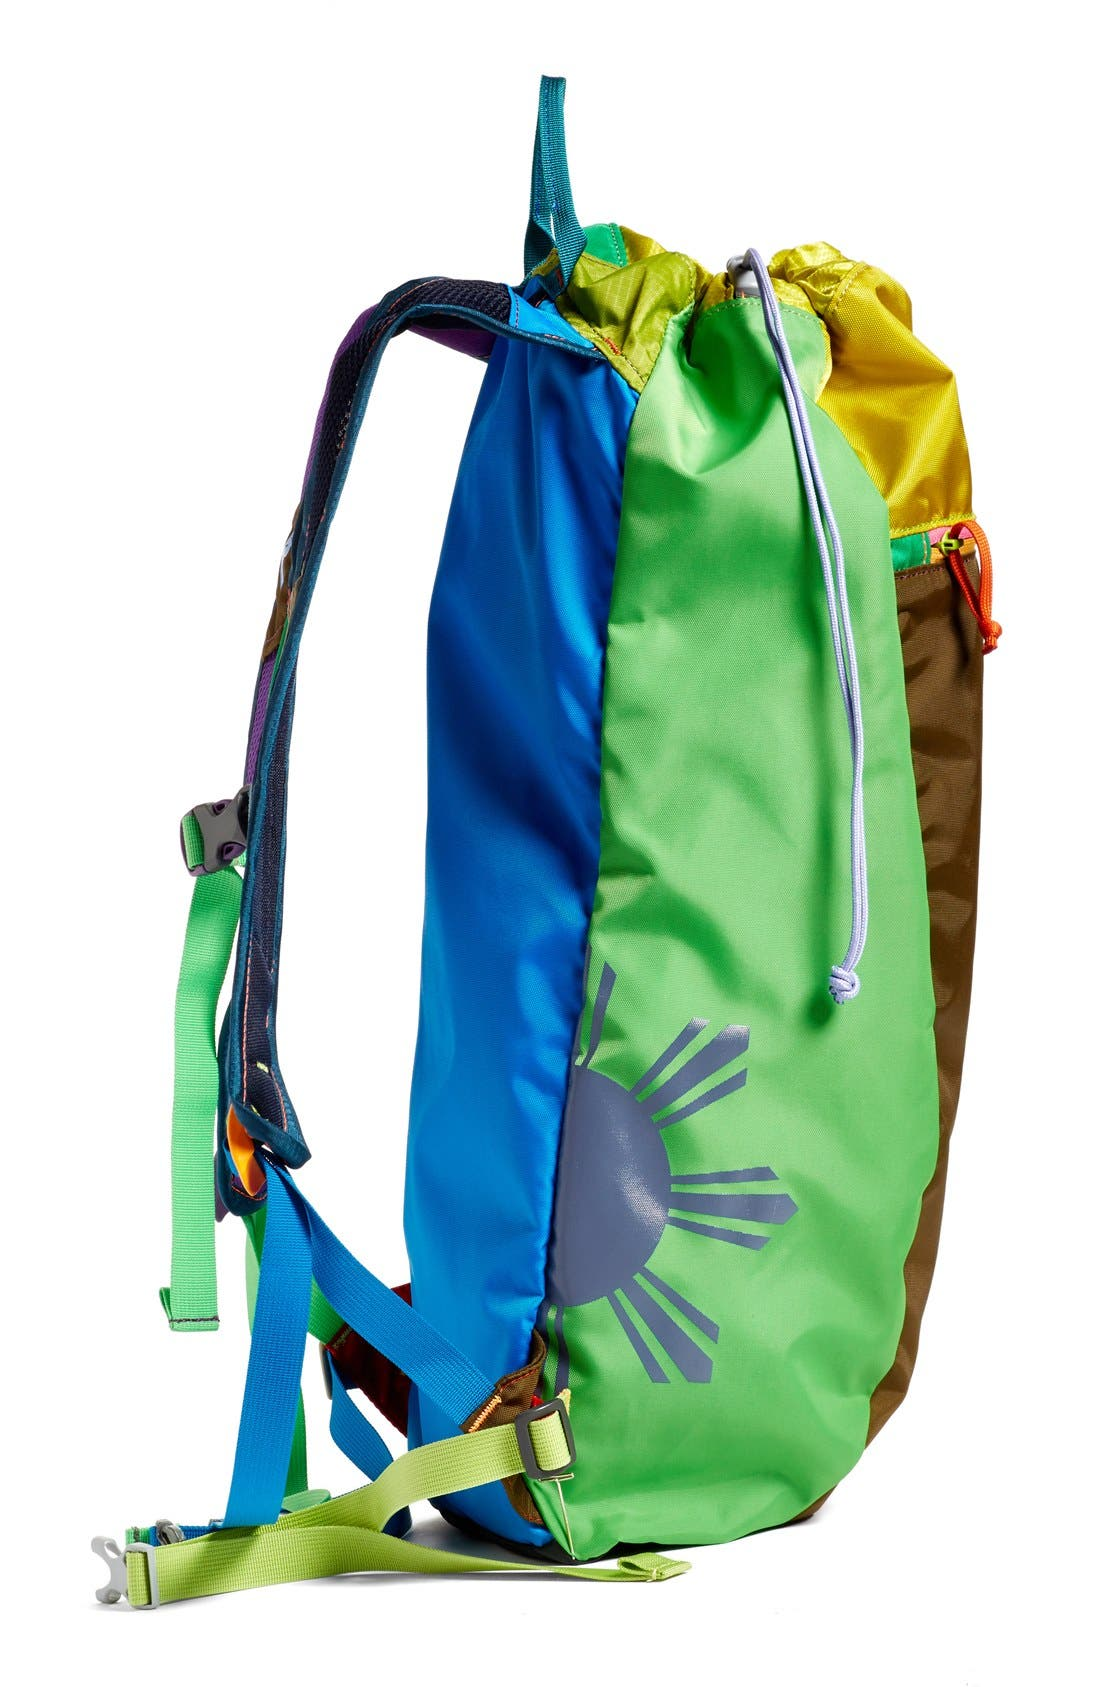 Luzon Del Dia One of a Kind Ripstop Nylon Daypack,                             Alternate thumbnail 3, color,